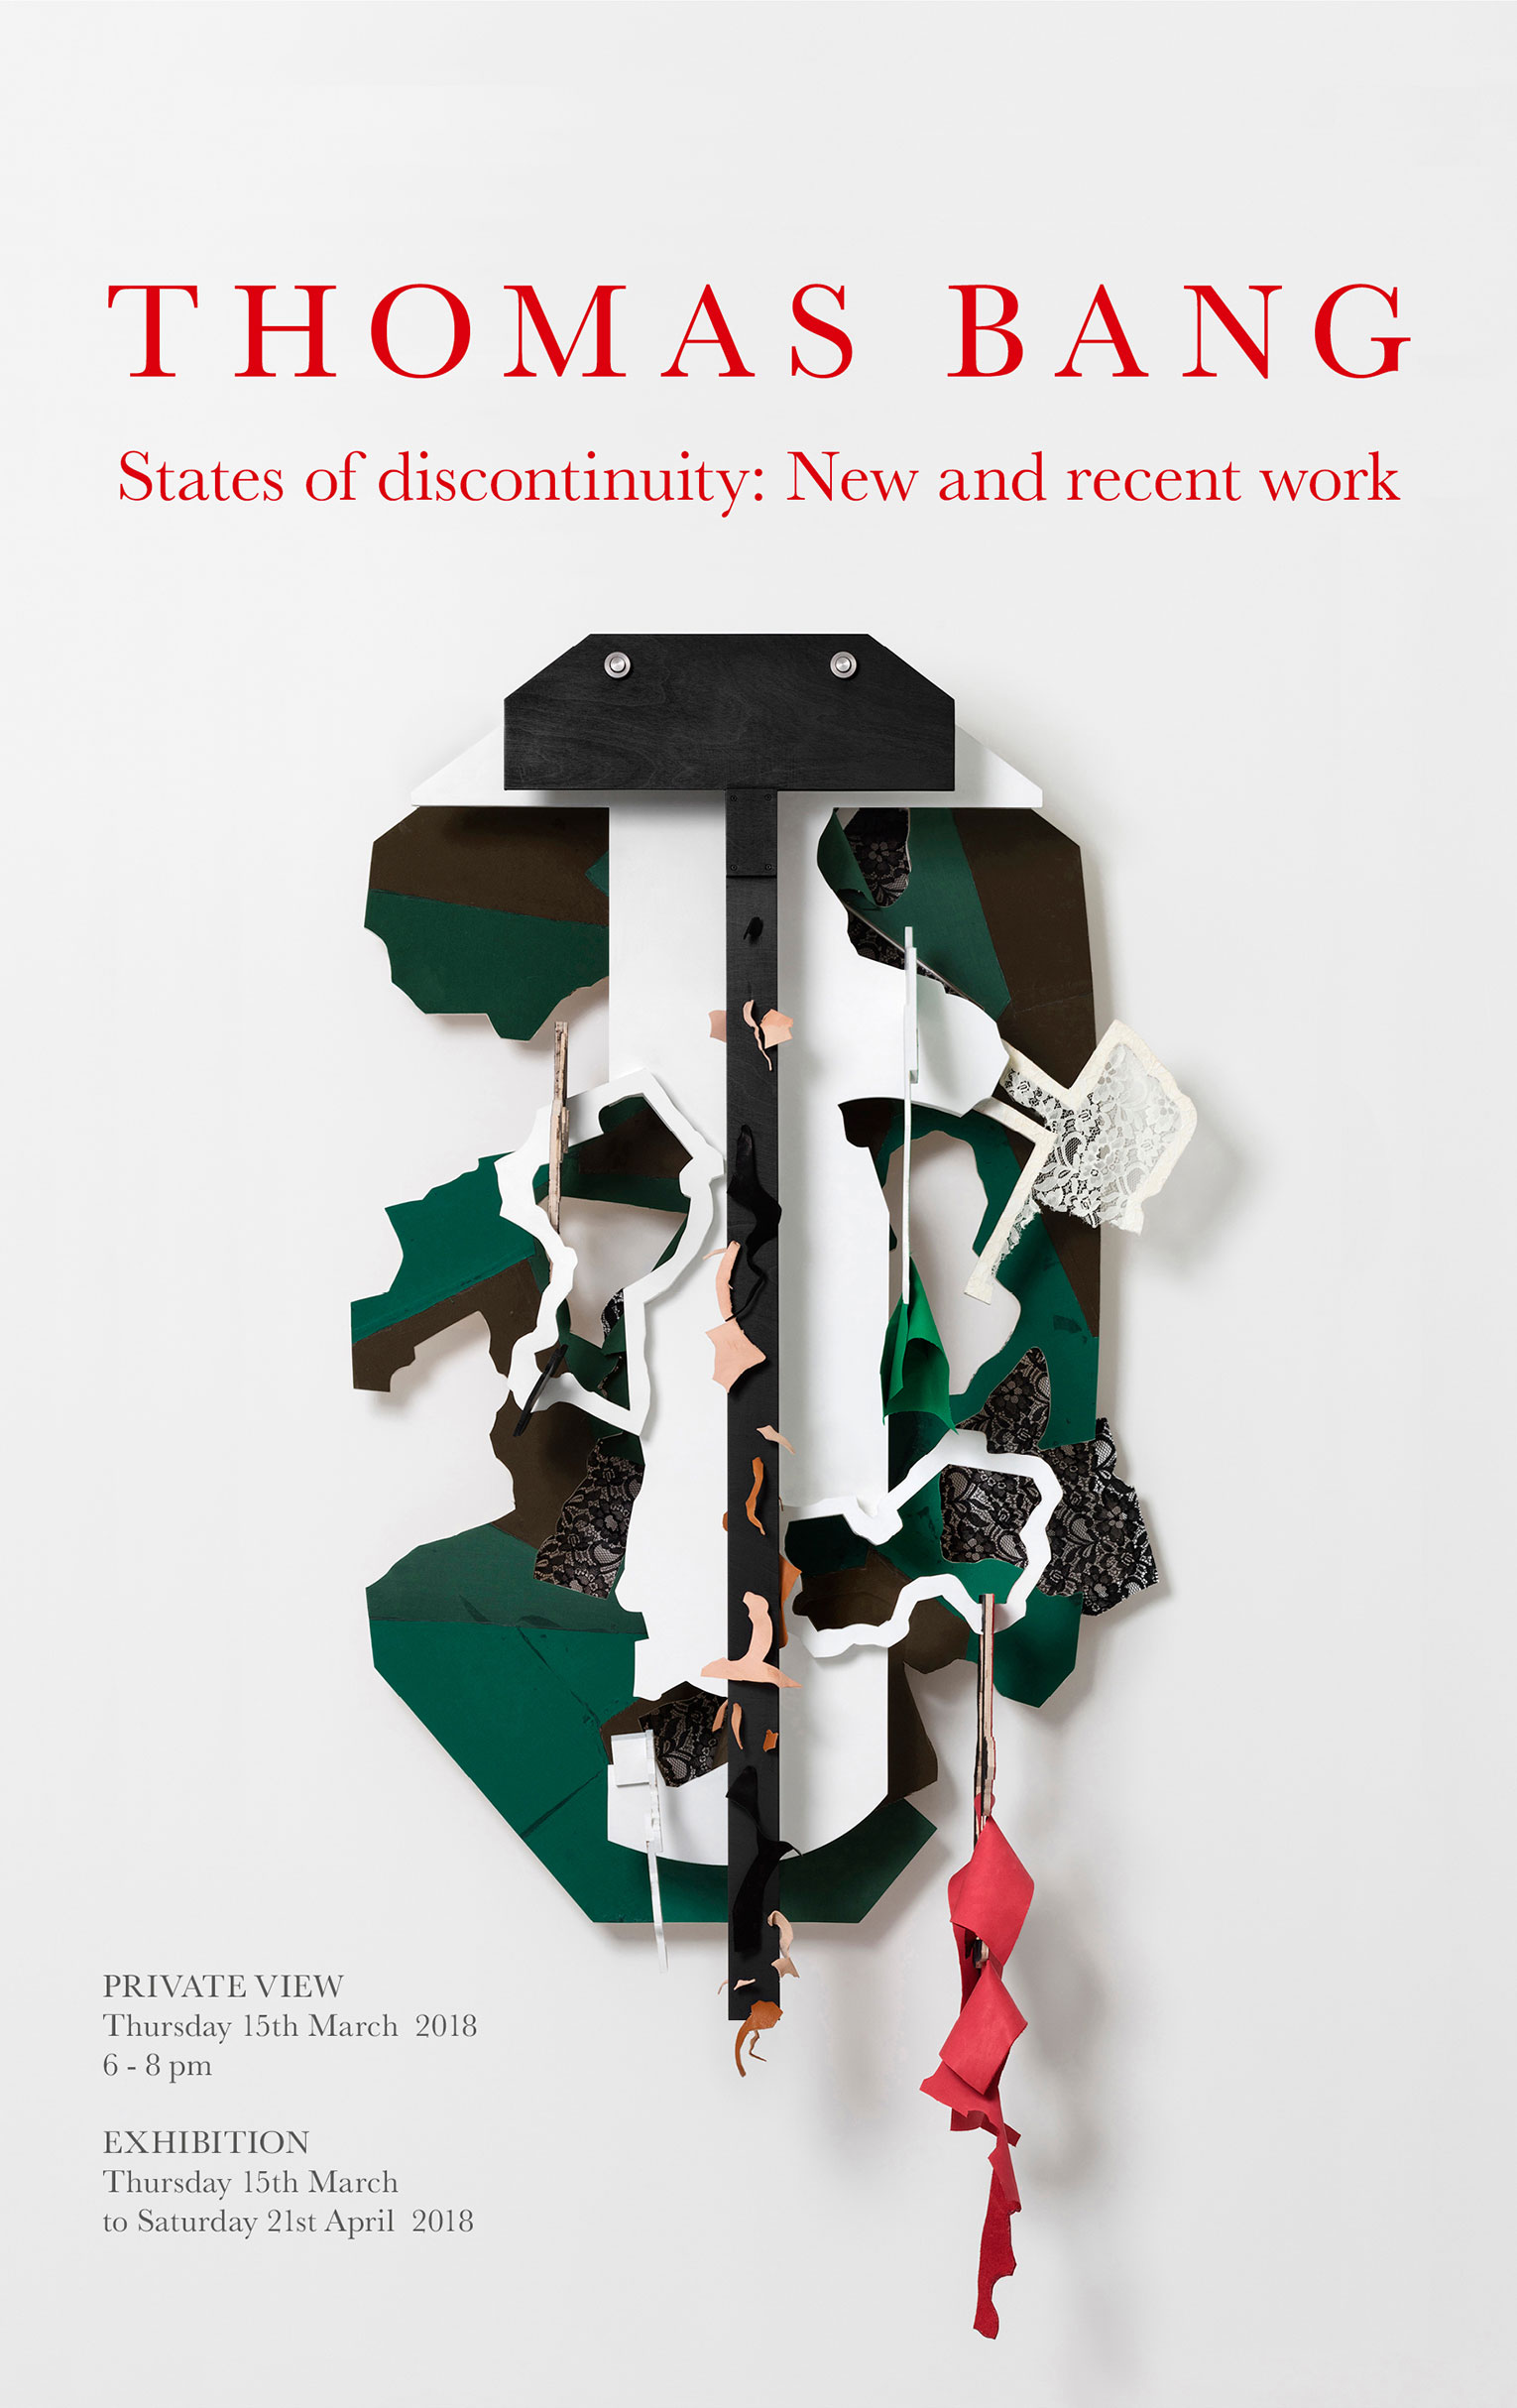 States of discontinuity: New and recent work